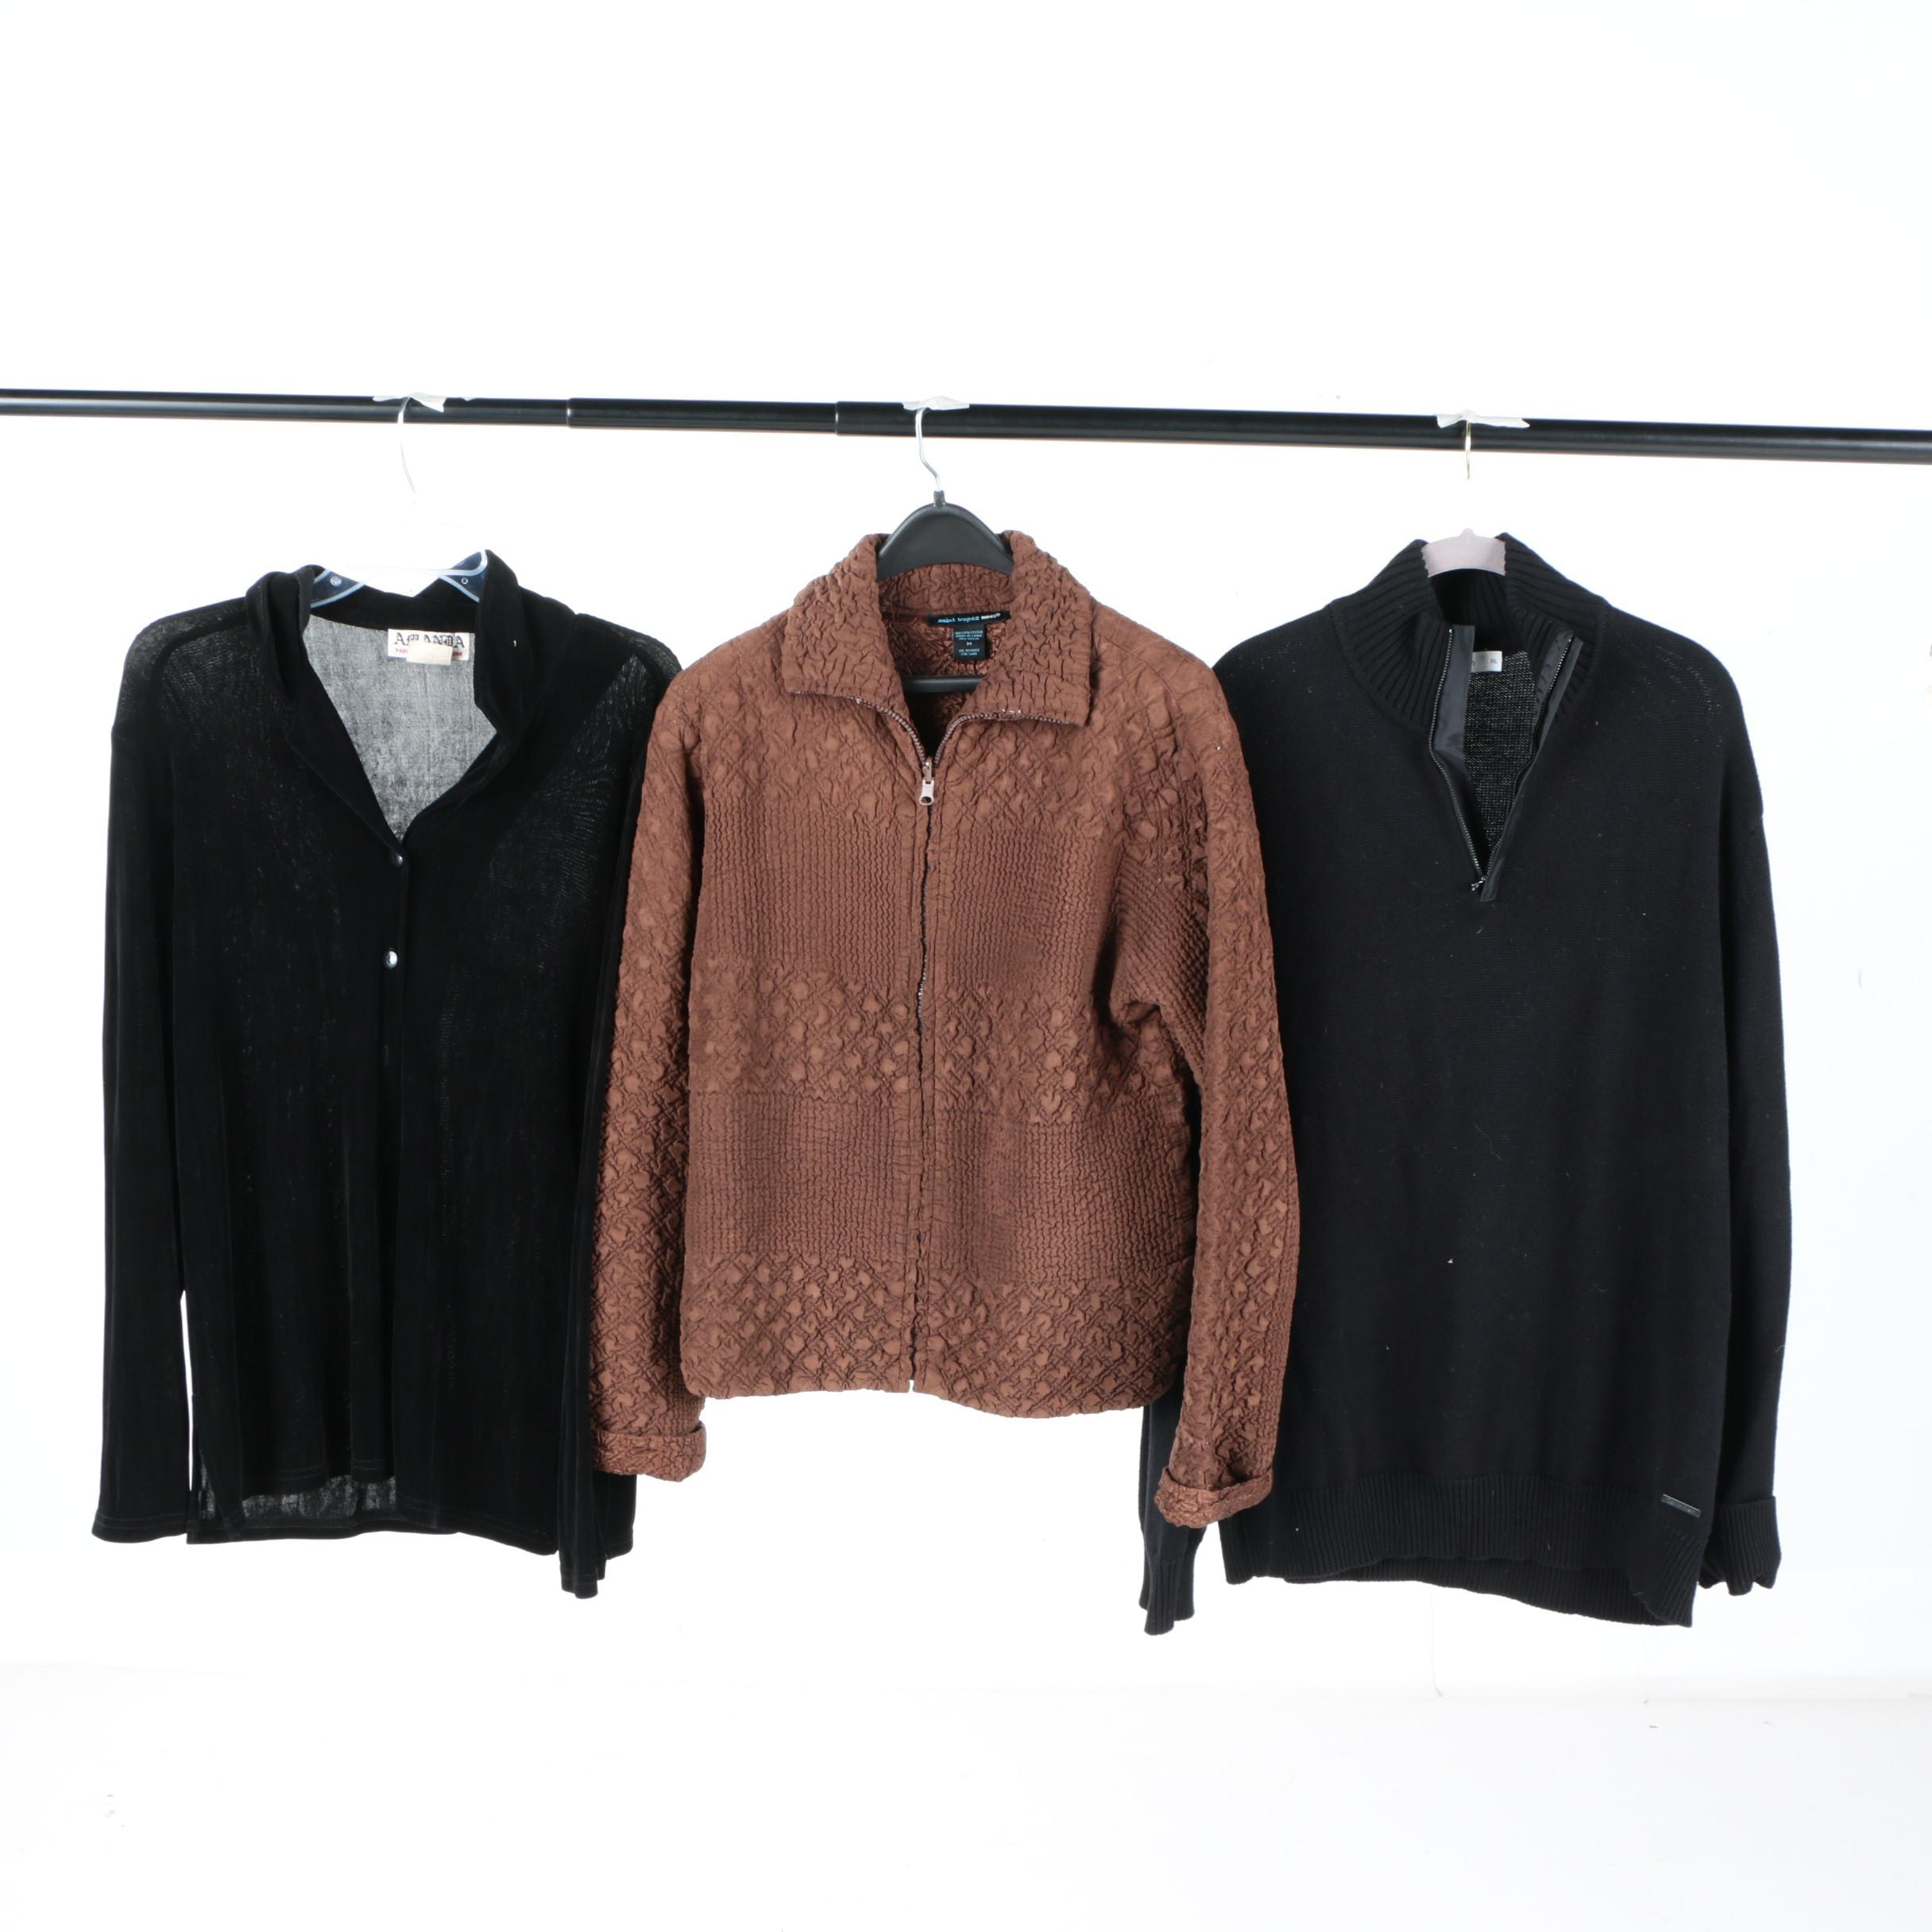 Women's Sweaters and Jacket